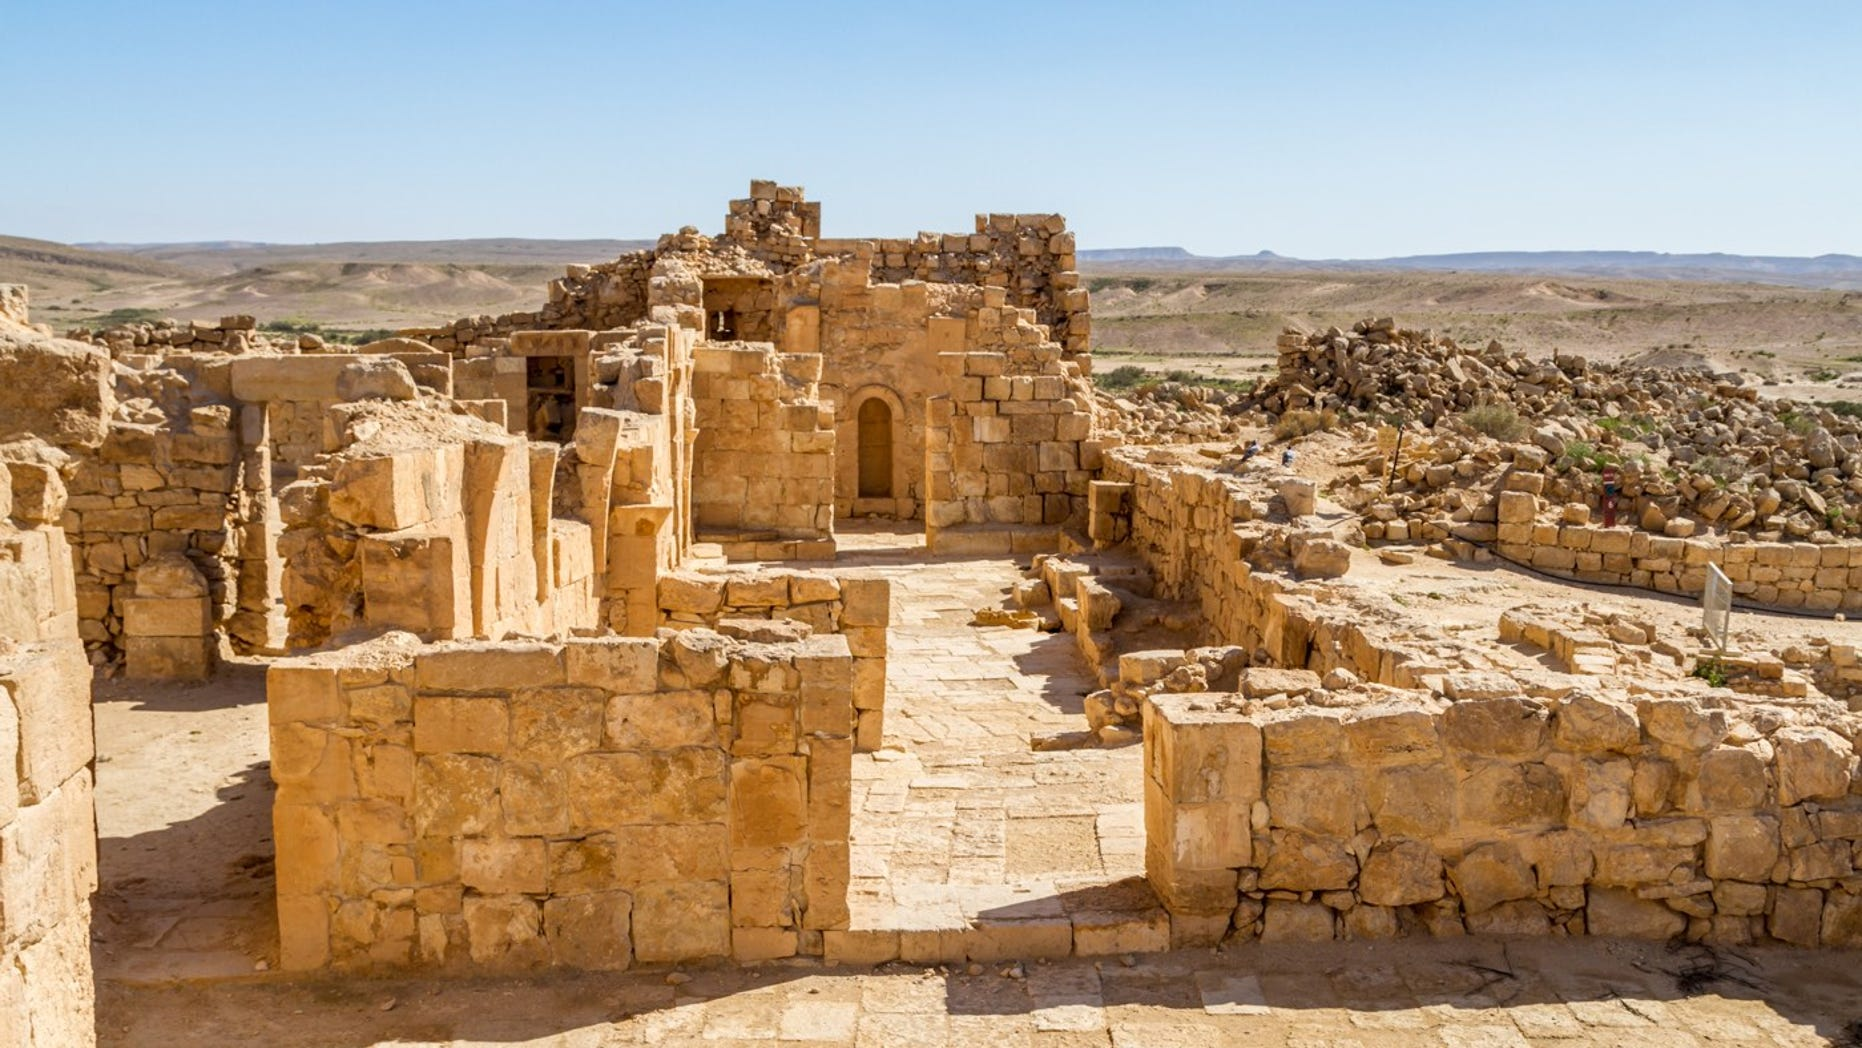 Ruins from a ancient city of Shivta in a Negev Desert in Israel.